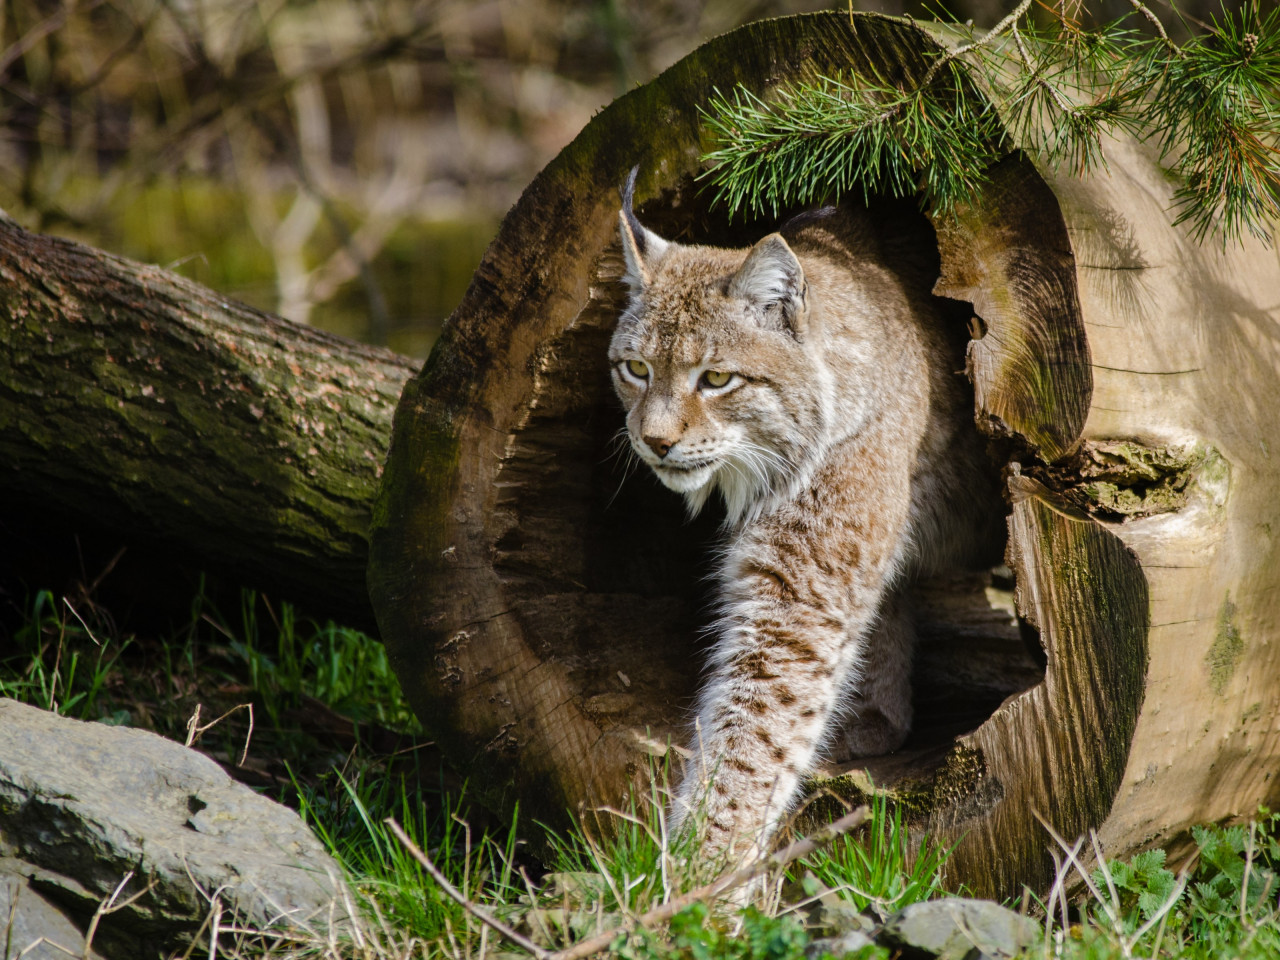 Lynx at the Zoo wallpaper 1280x960